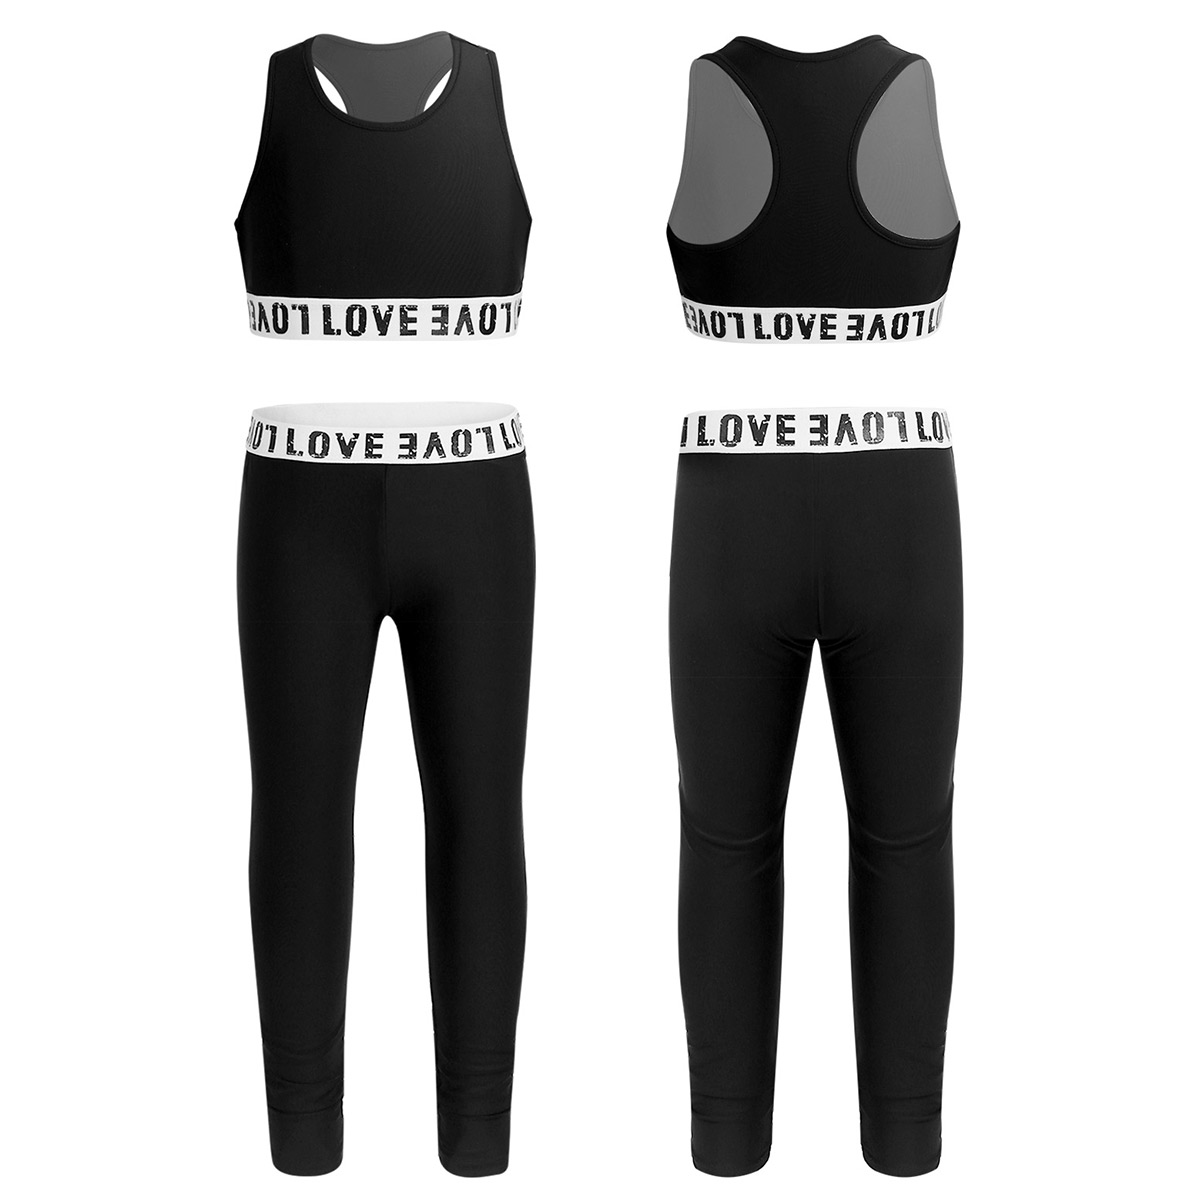 inhzoy Kids Girls Ballet Dance Wear Athletic Outfit Racer Back Tanks Crop Top with Leggings Set for Workout Gym Exercise